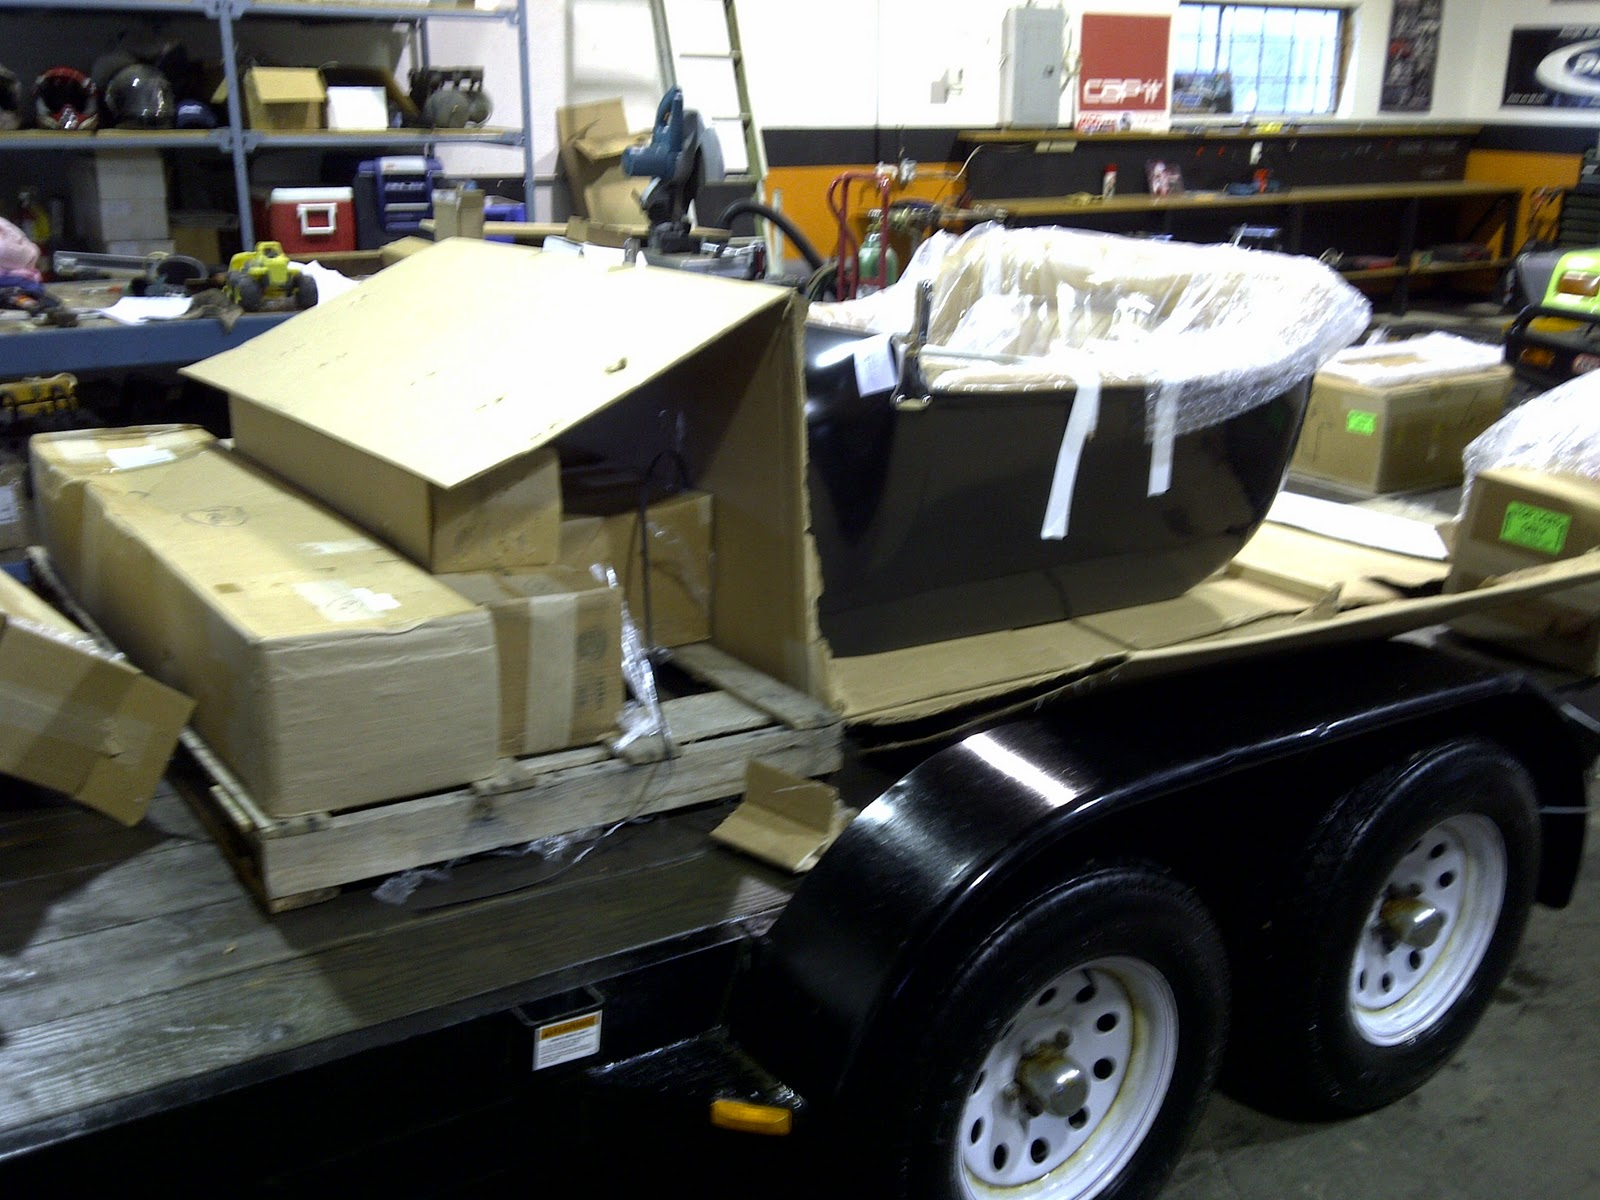 Cap-it Ford T-Bucket Hot Rod: The Hot Rod Frame and Body arrived